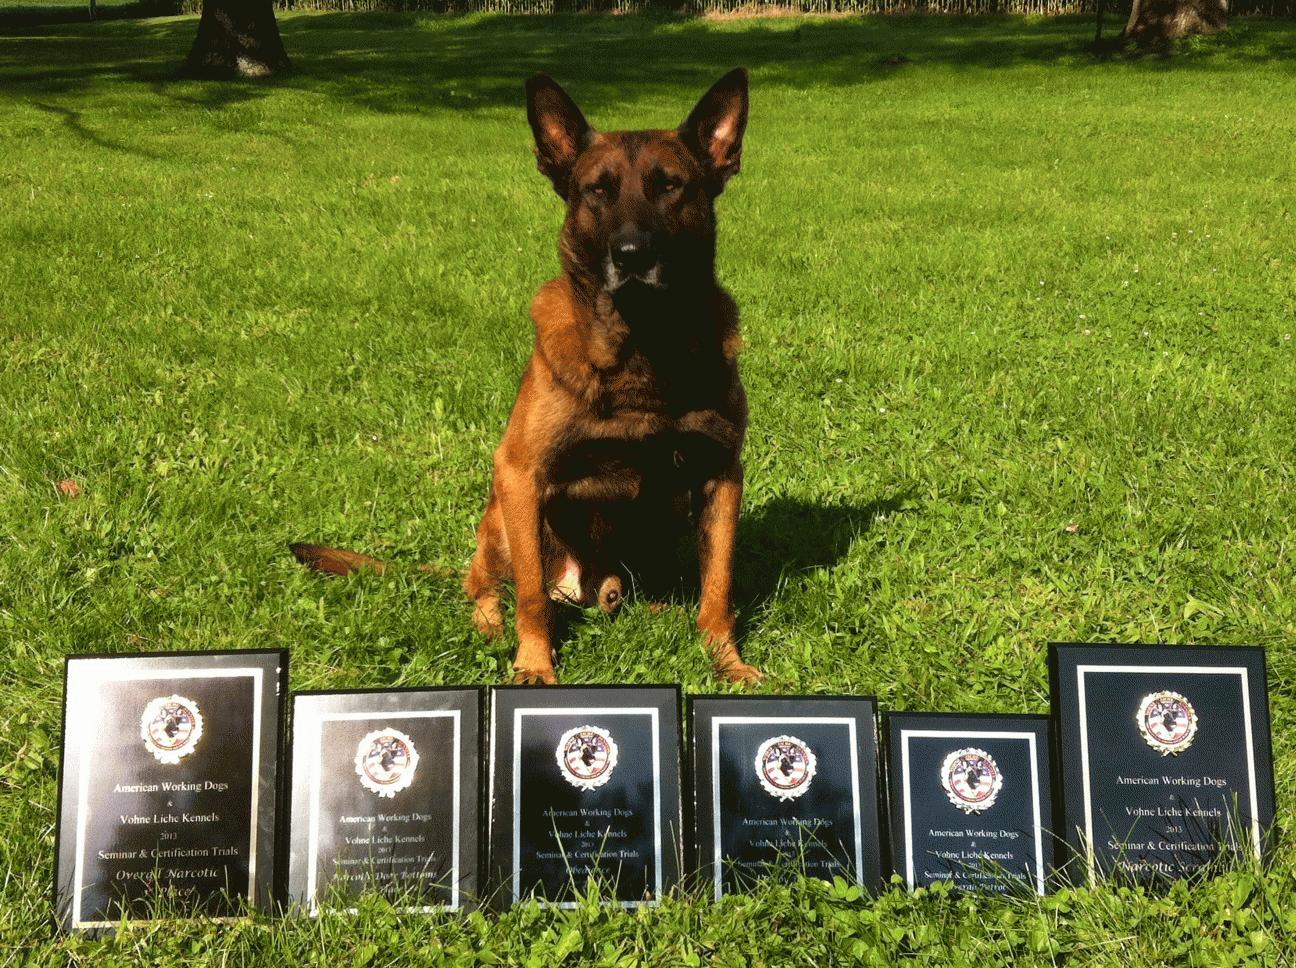 K9 Tico With a Row of Plaques in Front of Him